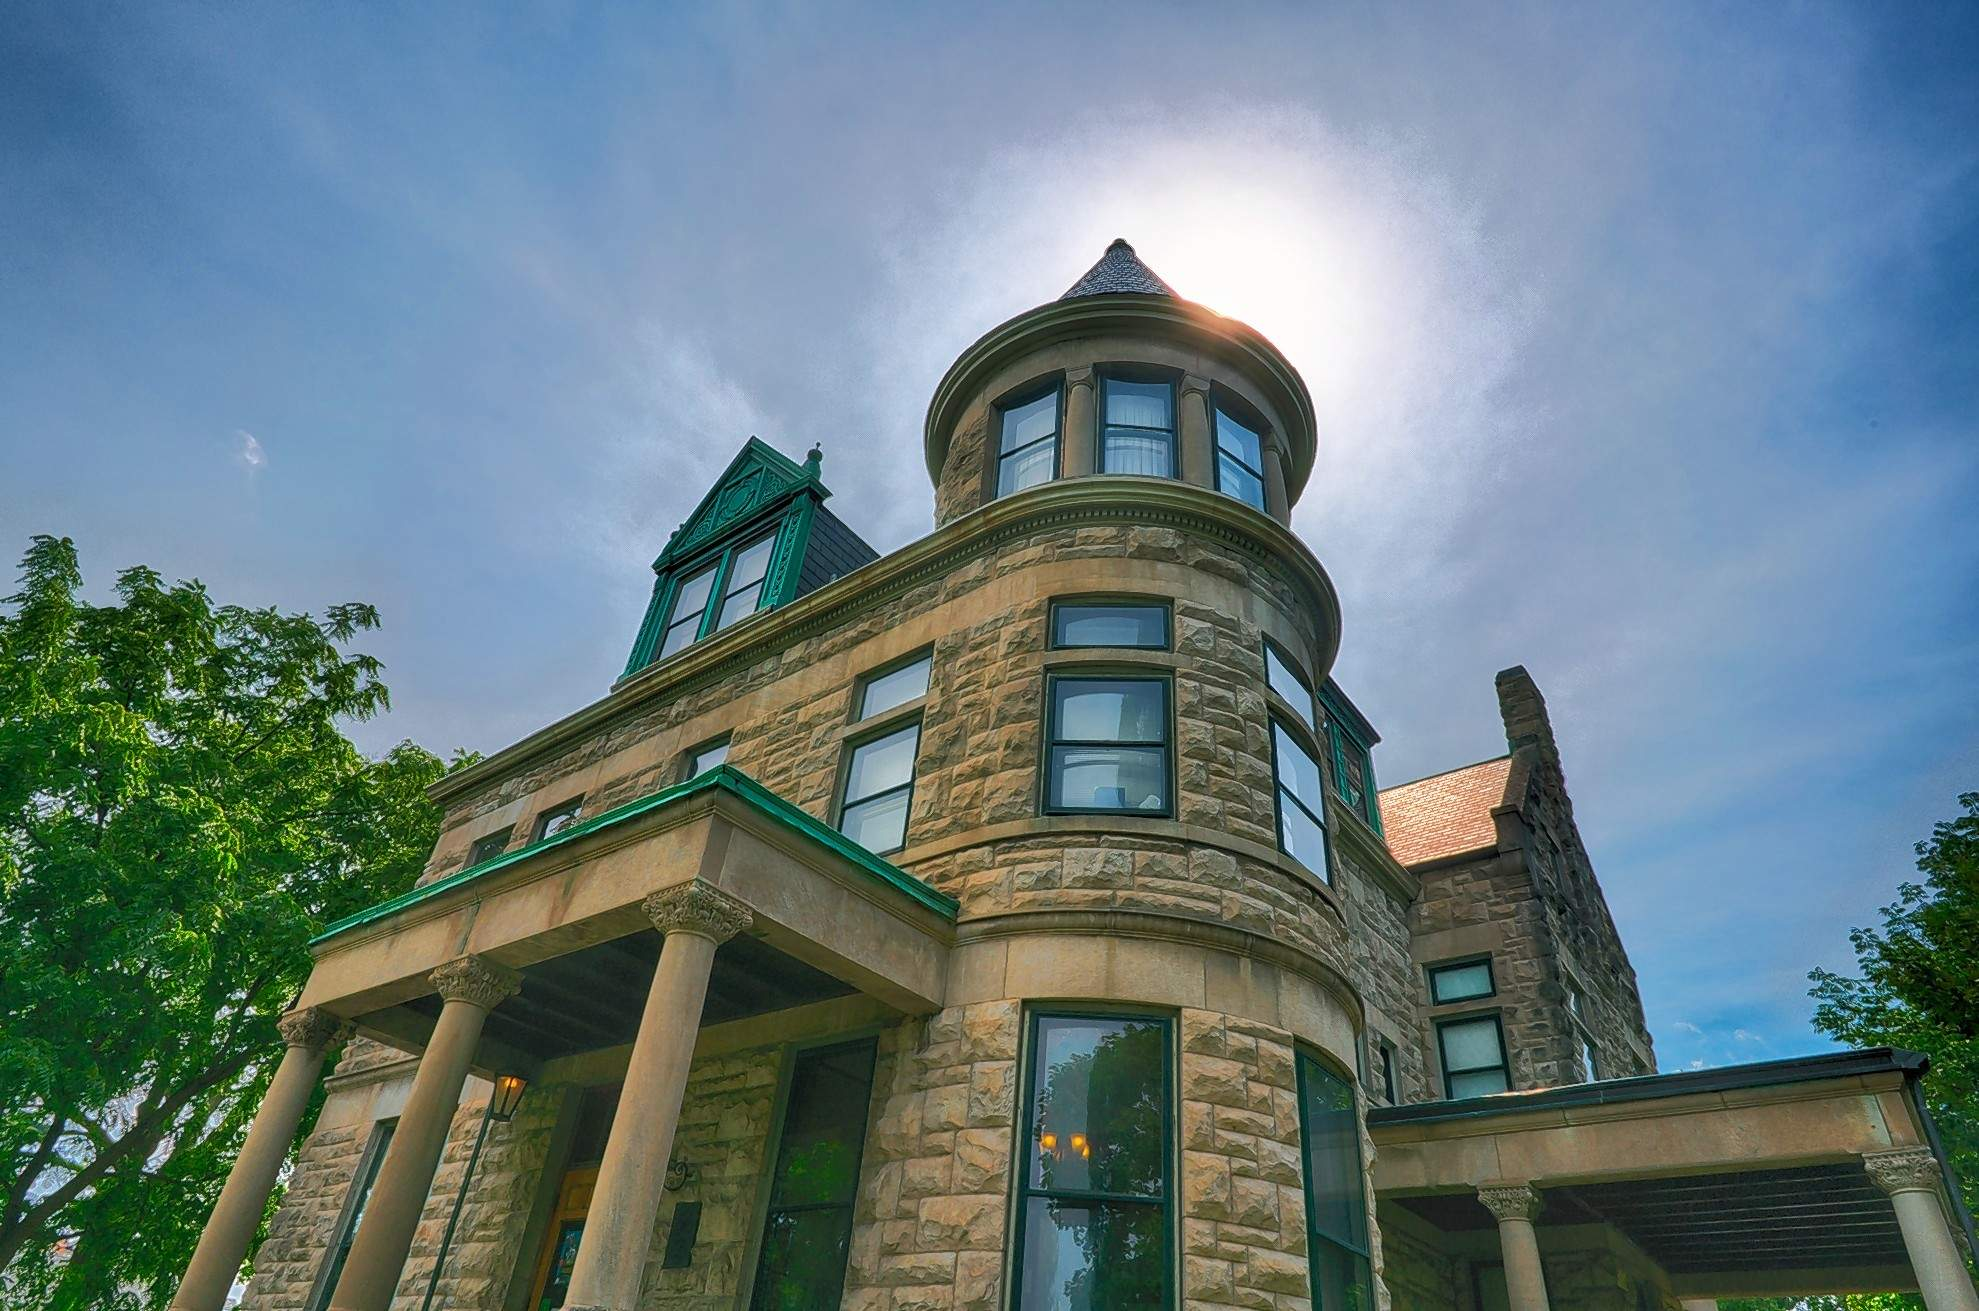 Elmhurst is considering an architect to study the Elmhurst History Museum with an eye toward maximizing efficiencies and improving service to the public.